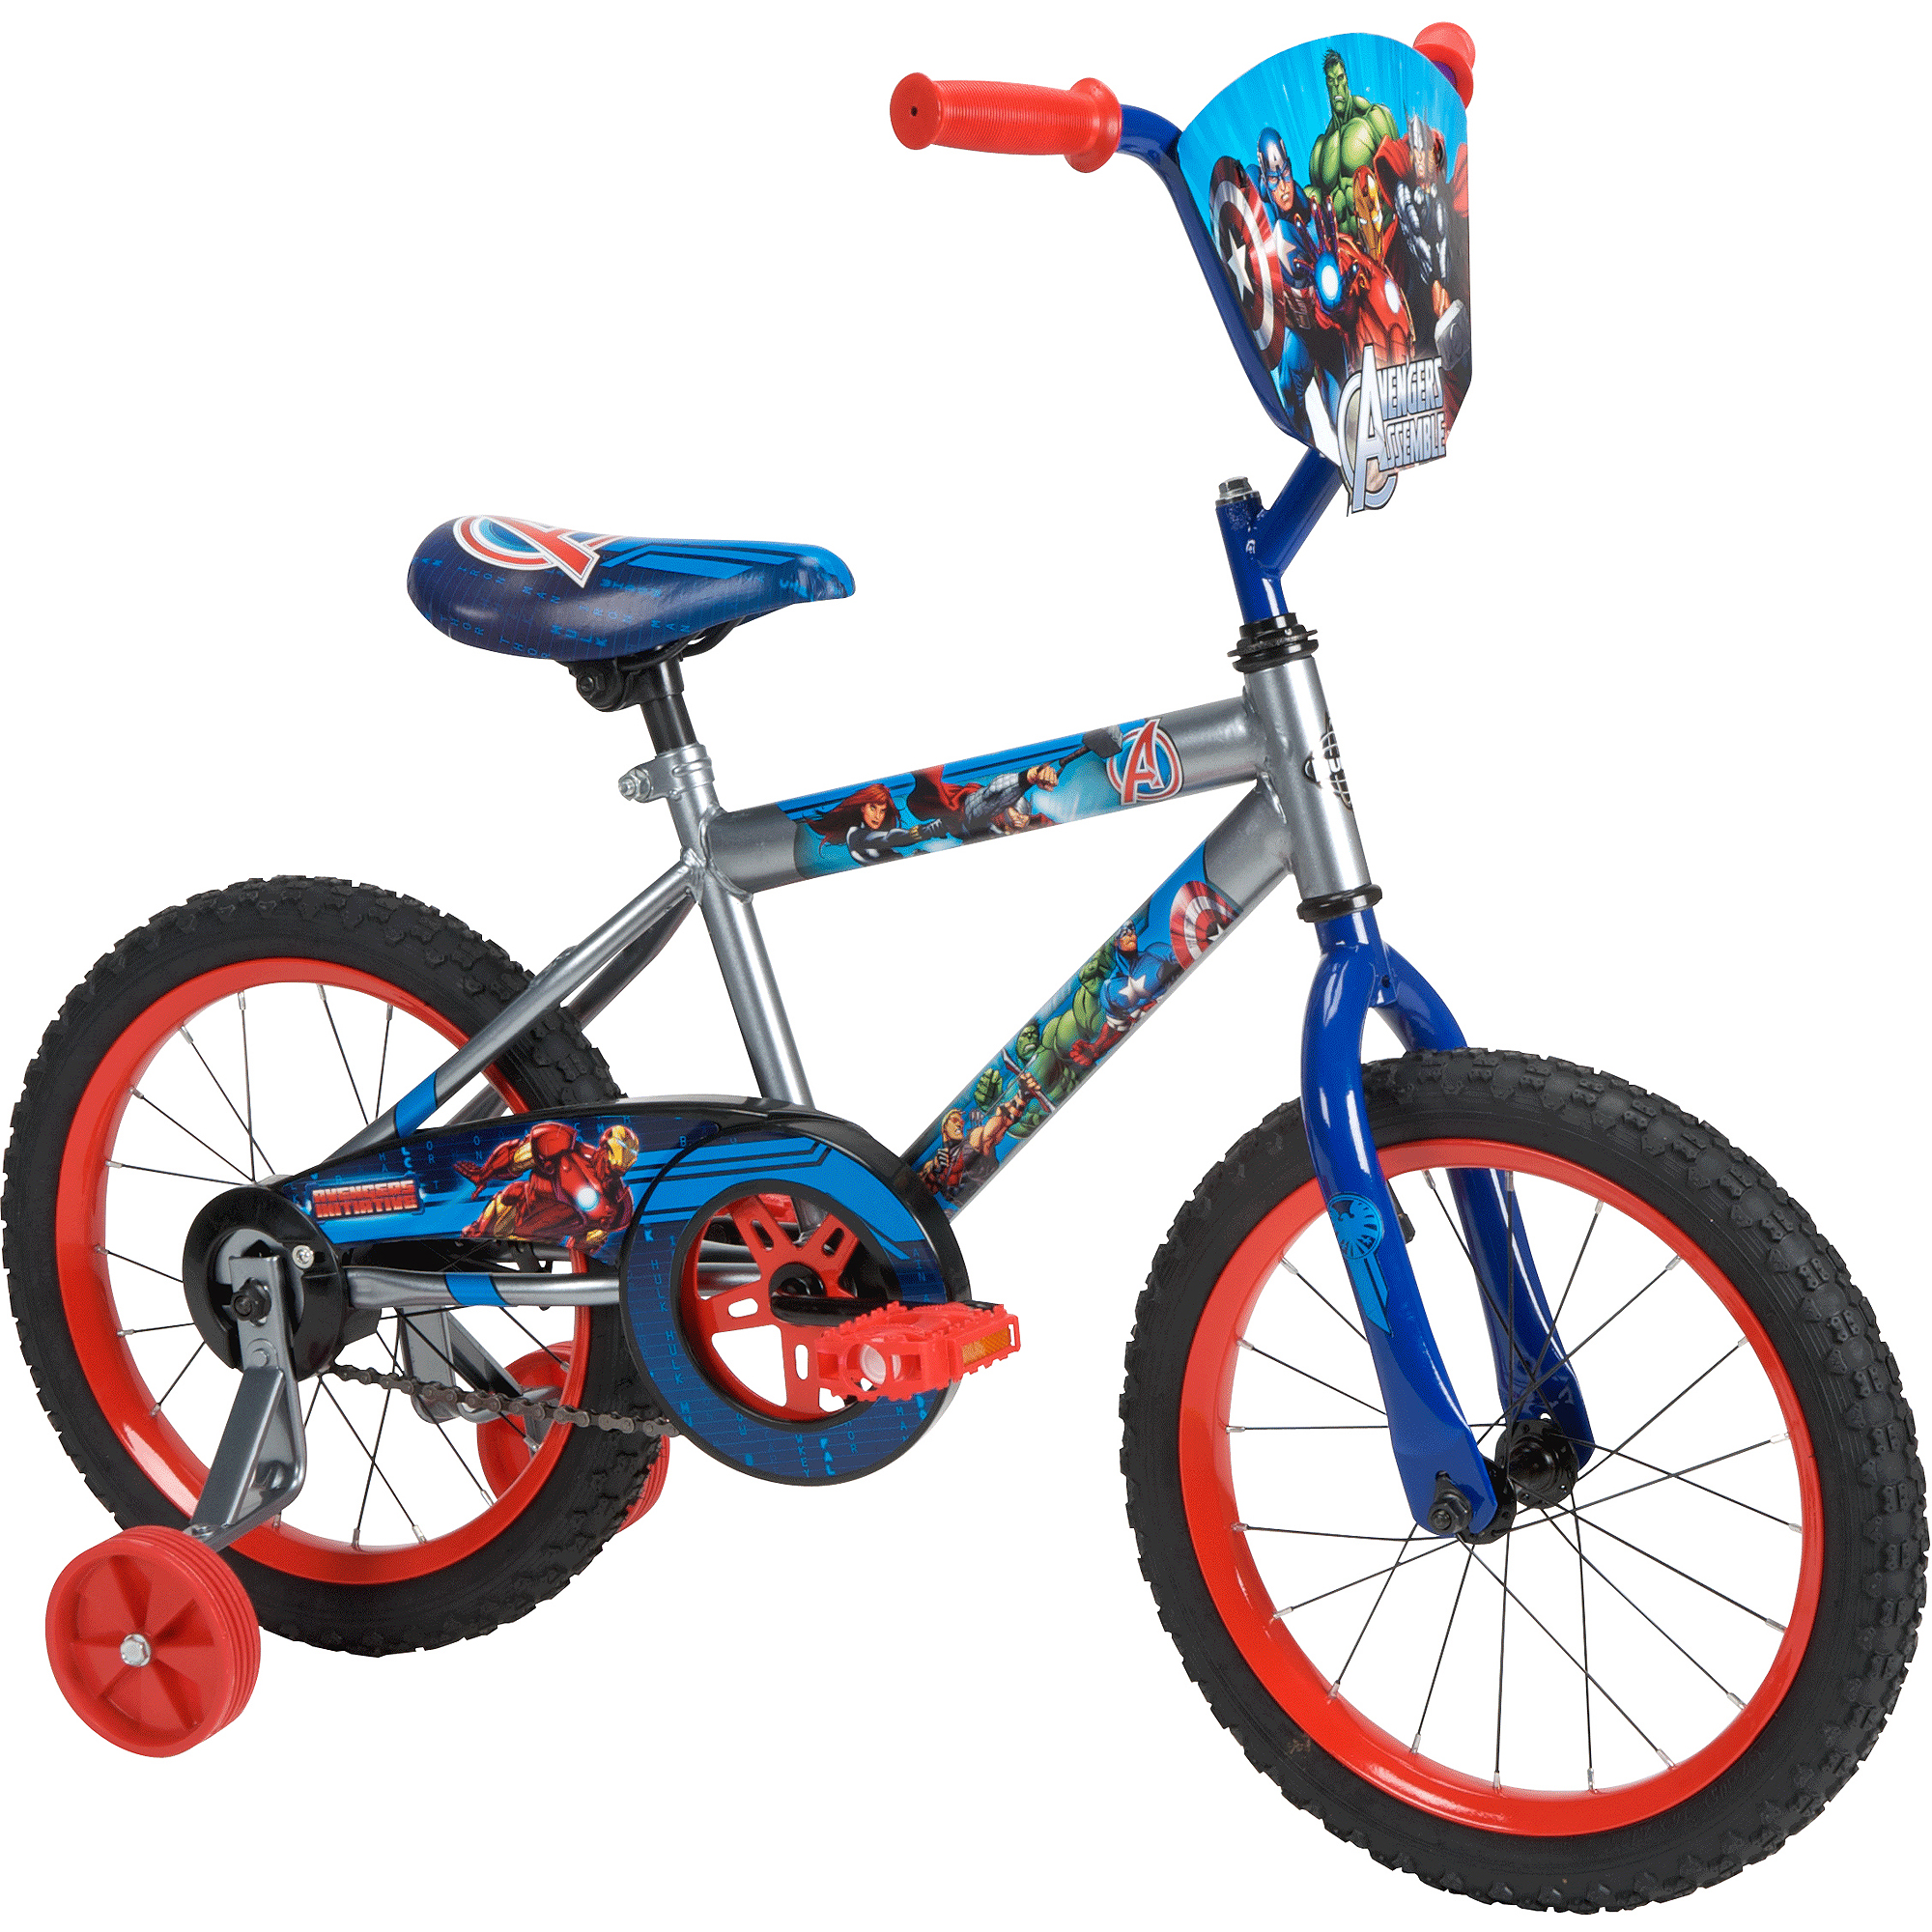 Hero bicycles for boys